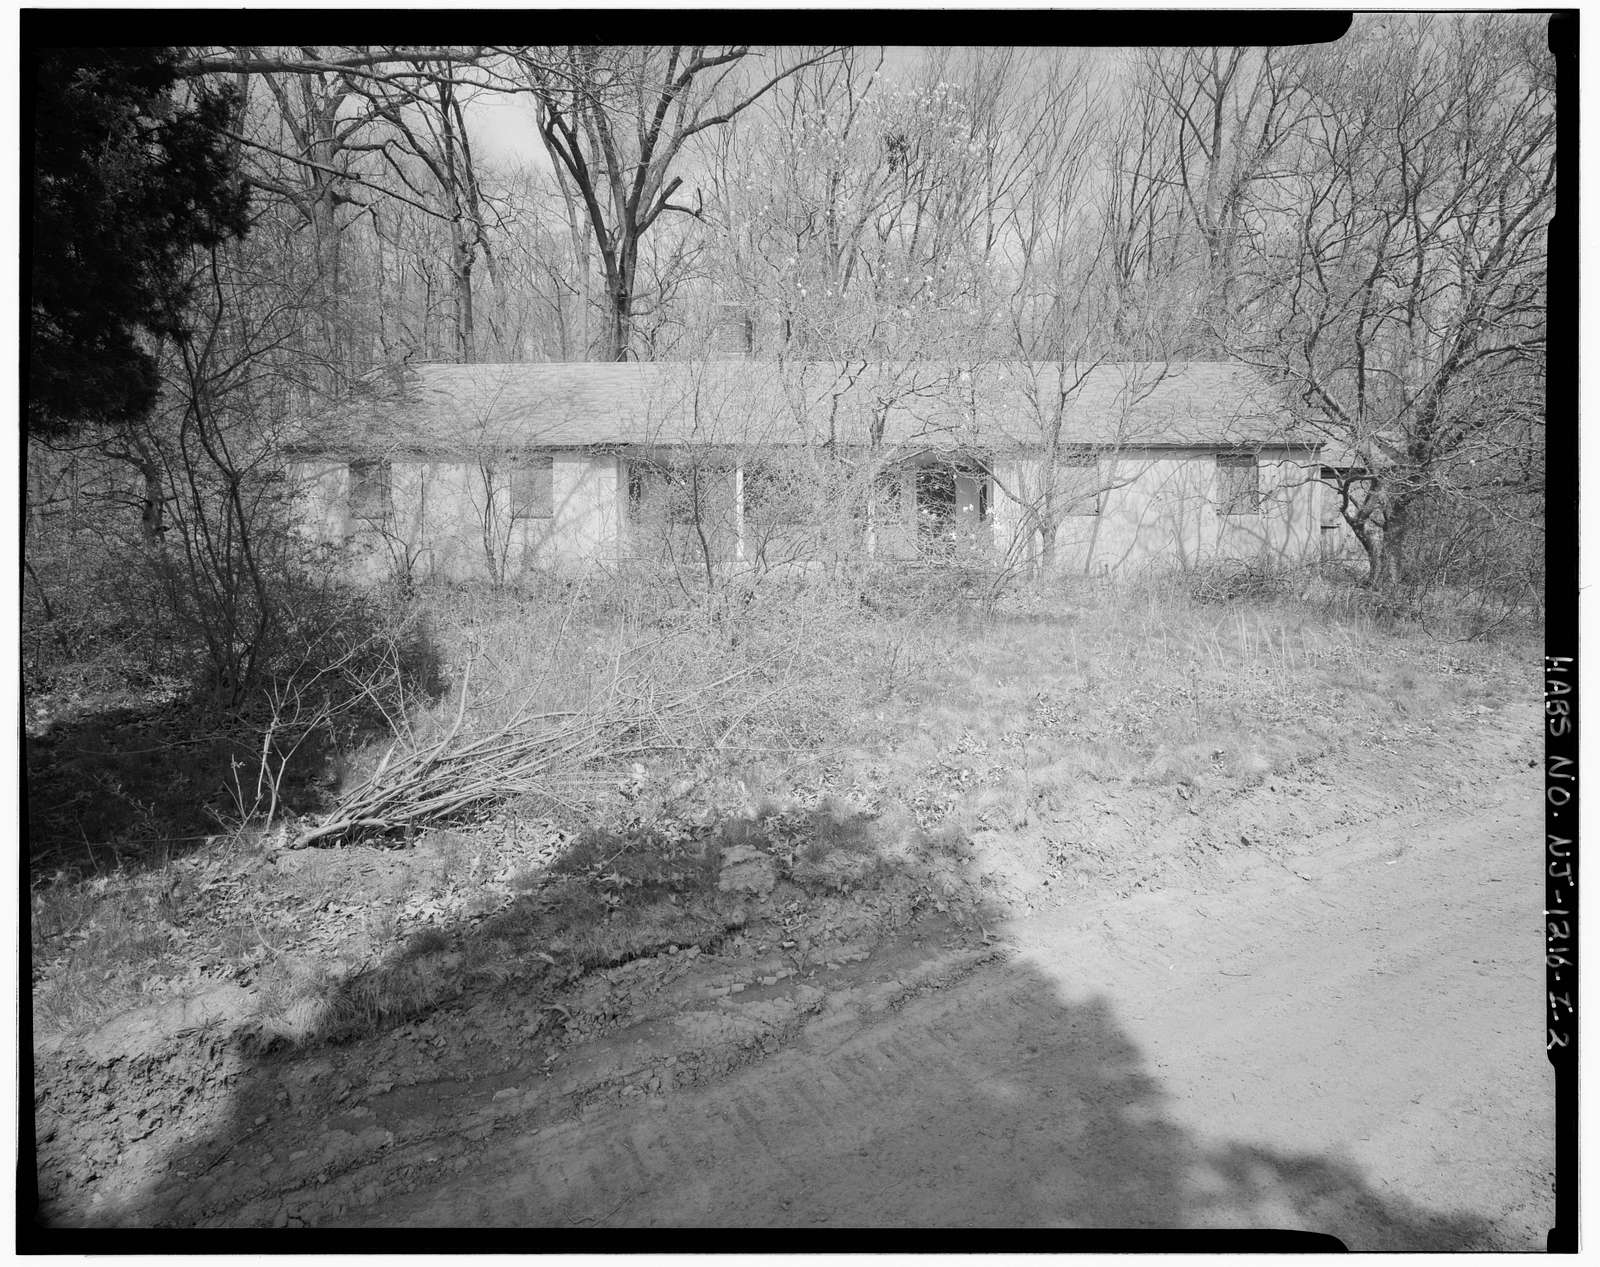 Brookrace Estate, Patrol Cottage Five, Located 0.1 mile north of Pleasant Valley Road & 0.5 mile east of Union School House Road, Morristown, Morris County, NJ